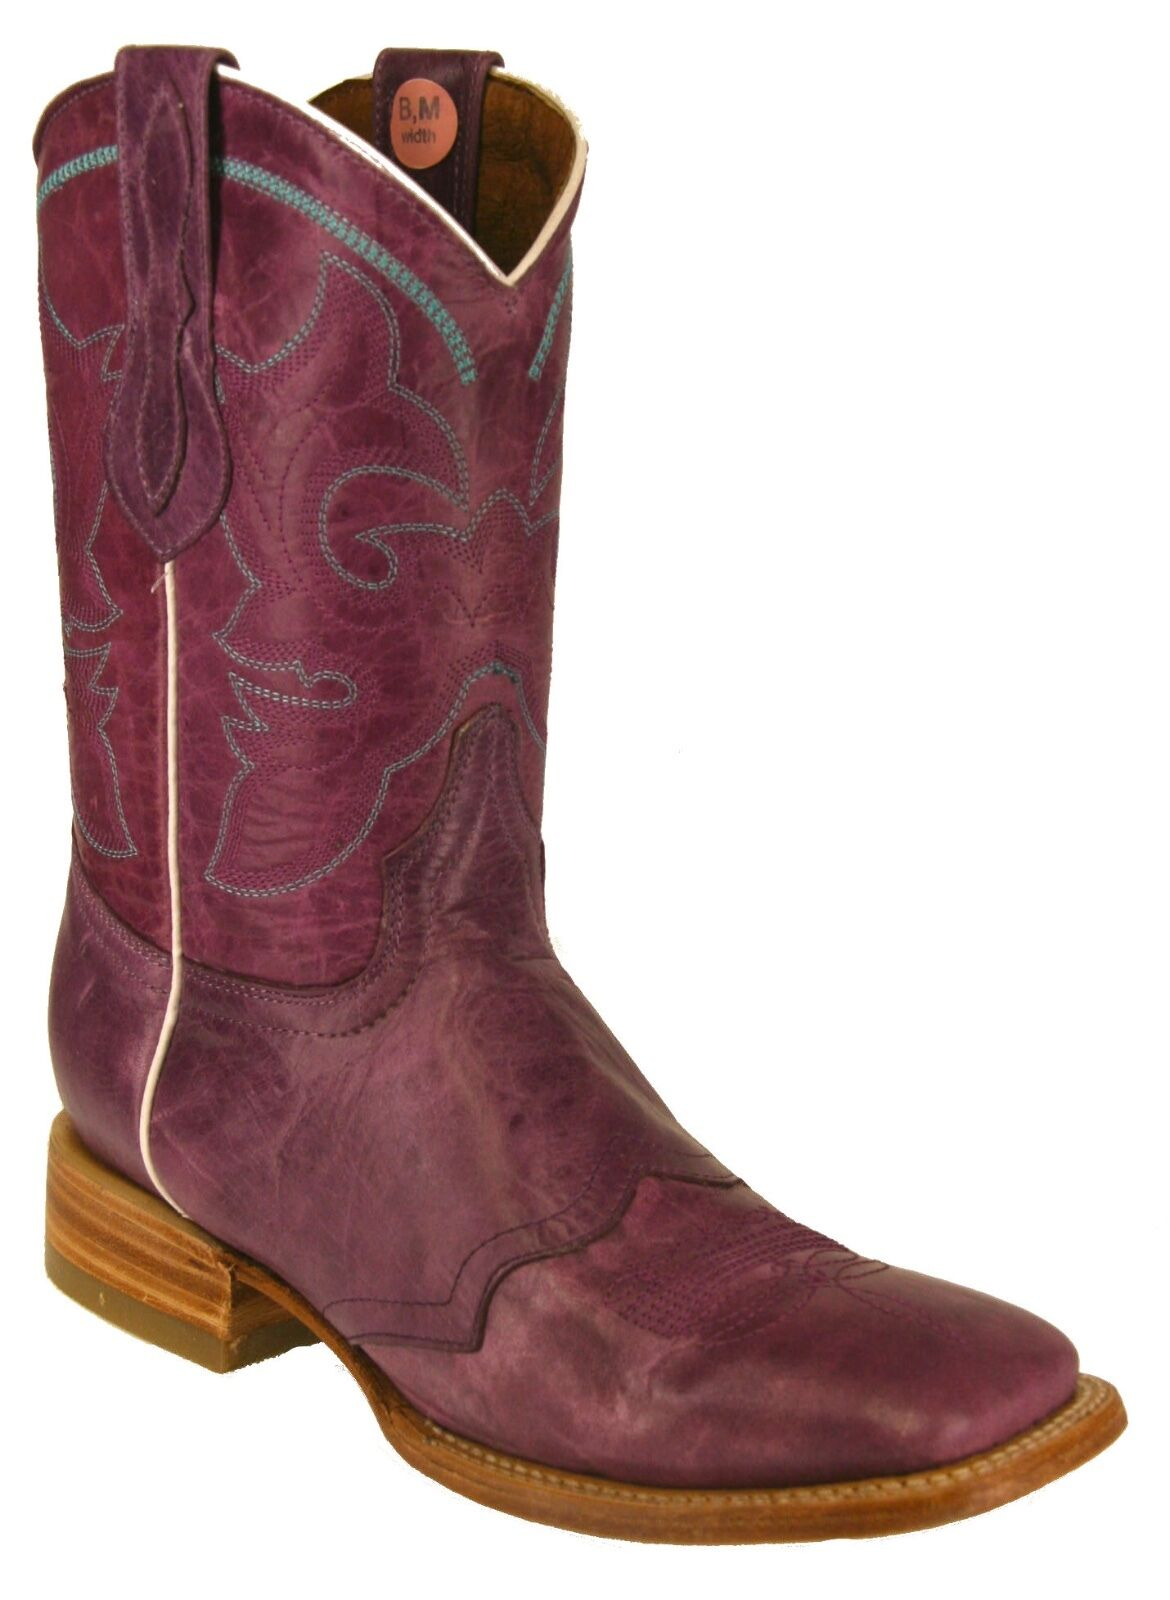 Women's New Leather Rodeo Cowboy Western Cowgirl Rodeo Leather Biker Boots Square Toe Purpule 55e4f9